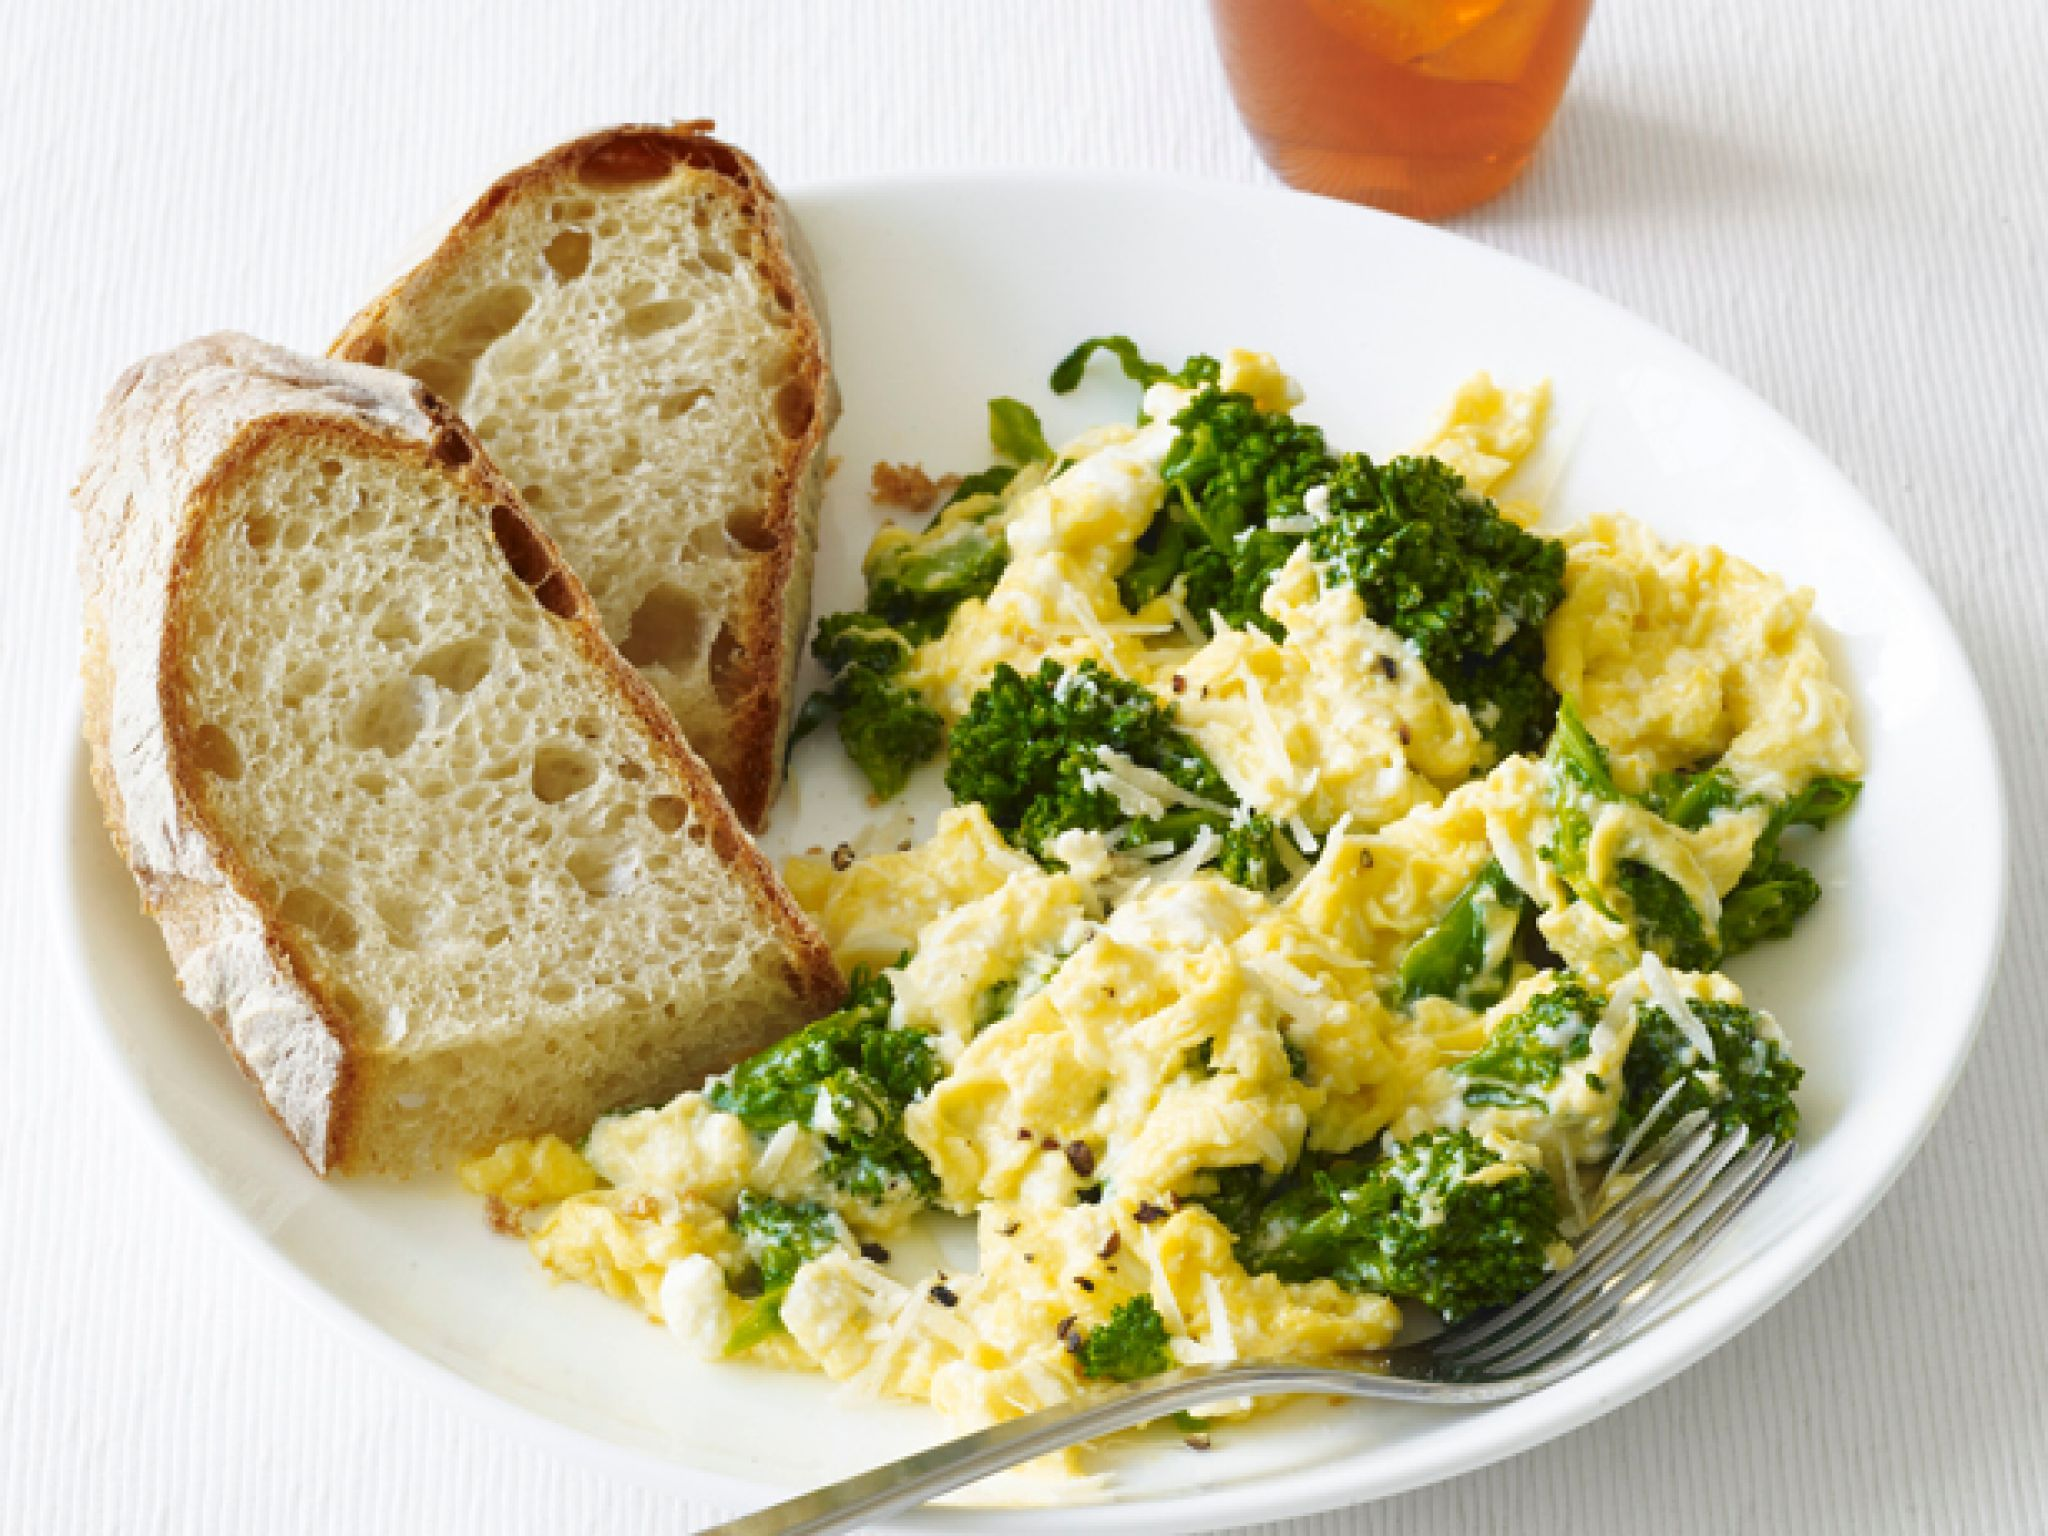 Scrambled eggs with ricotta and broccolini recipe ricotta egg scrambled eggs with ricotta and broccolini forumfinder Choice Image